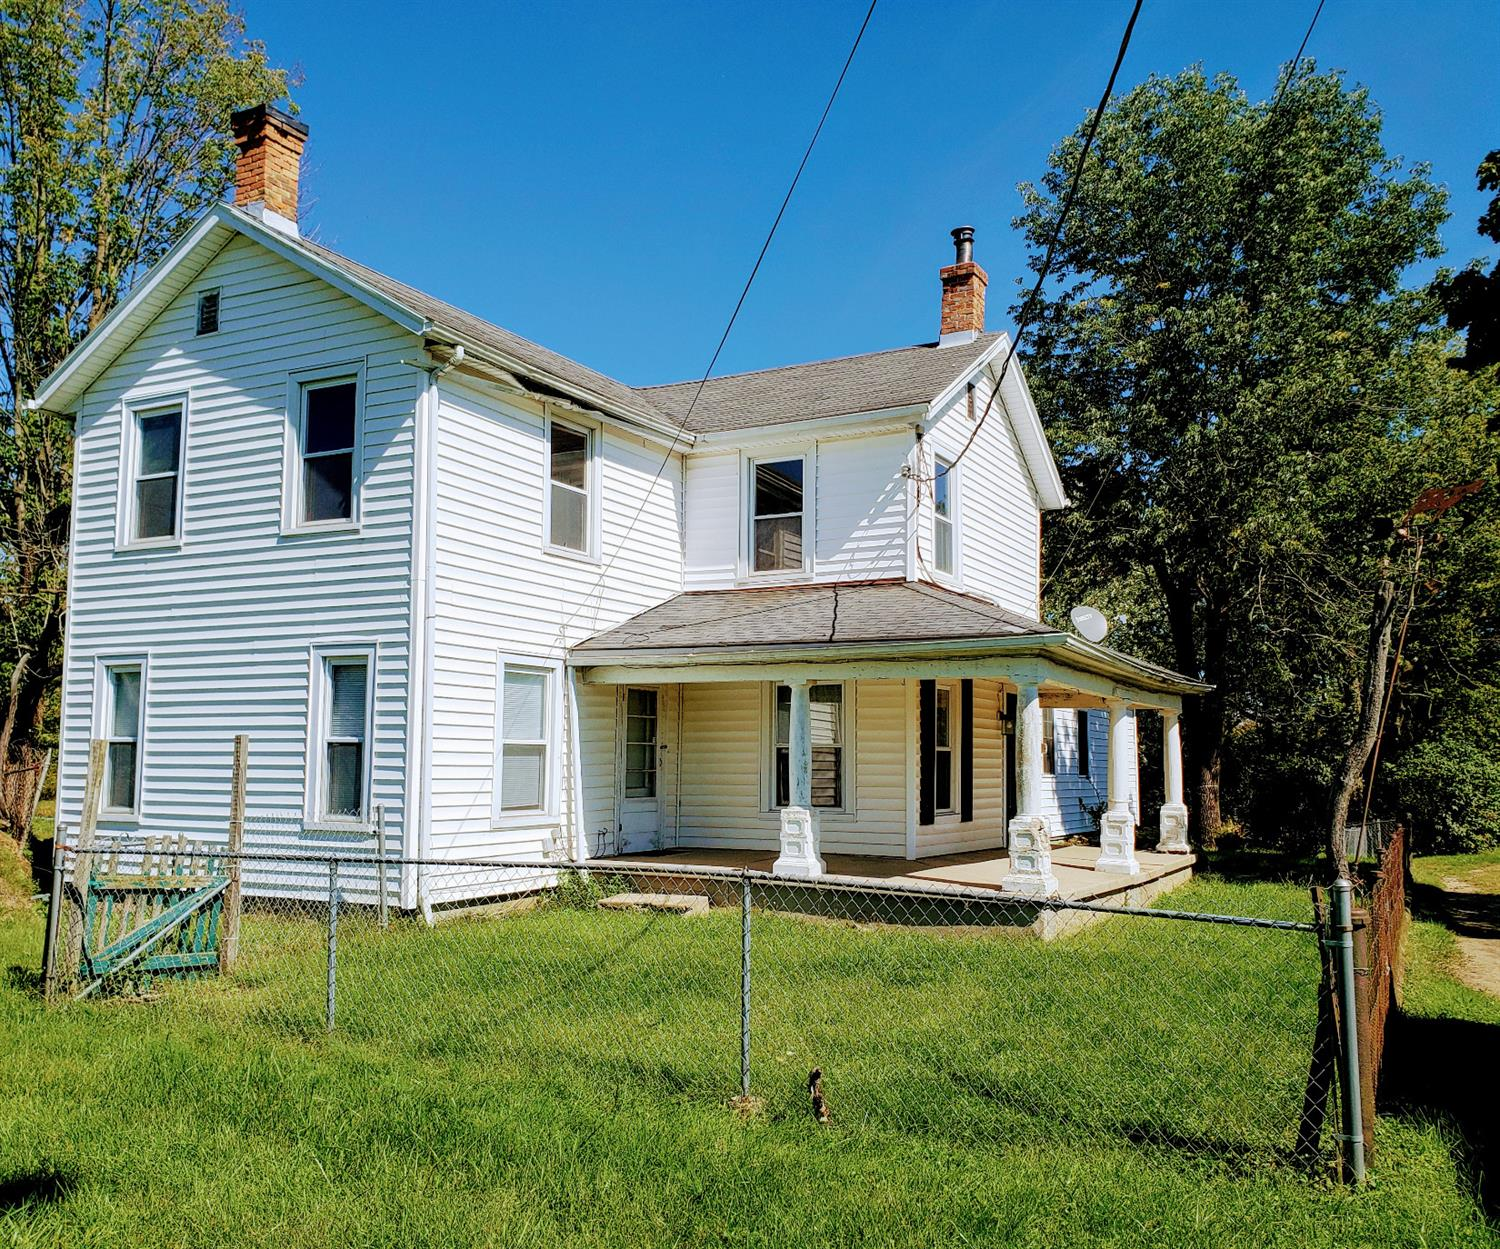 7370 Middletown Germantown Rd Madison Twp., OH